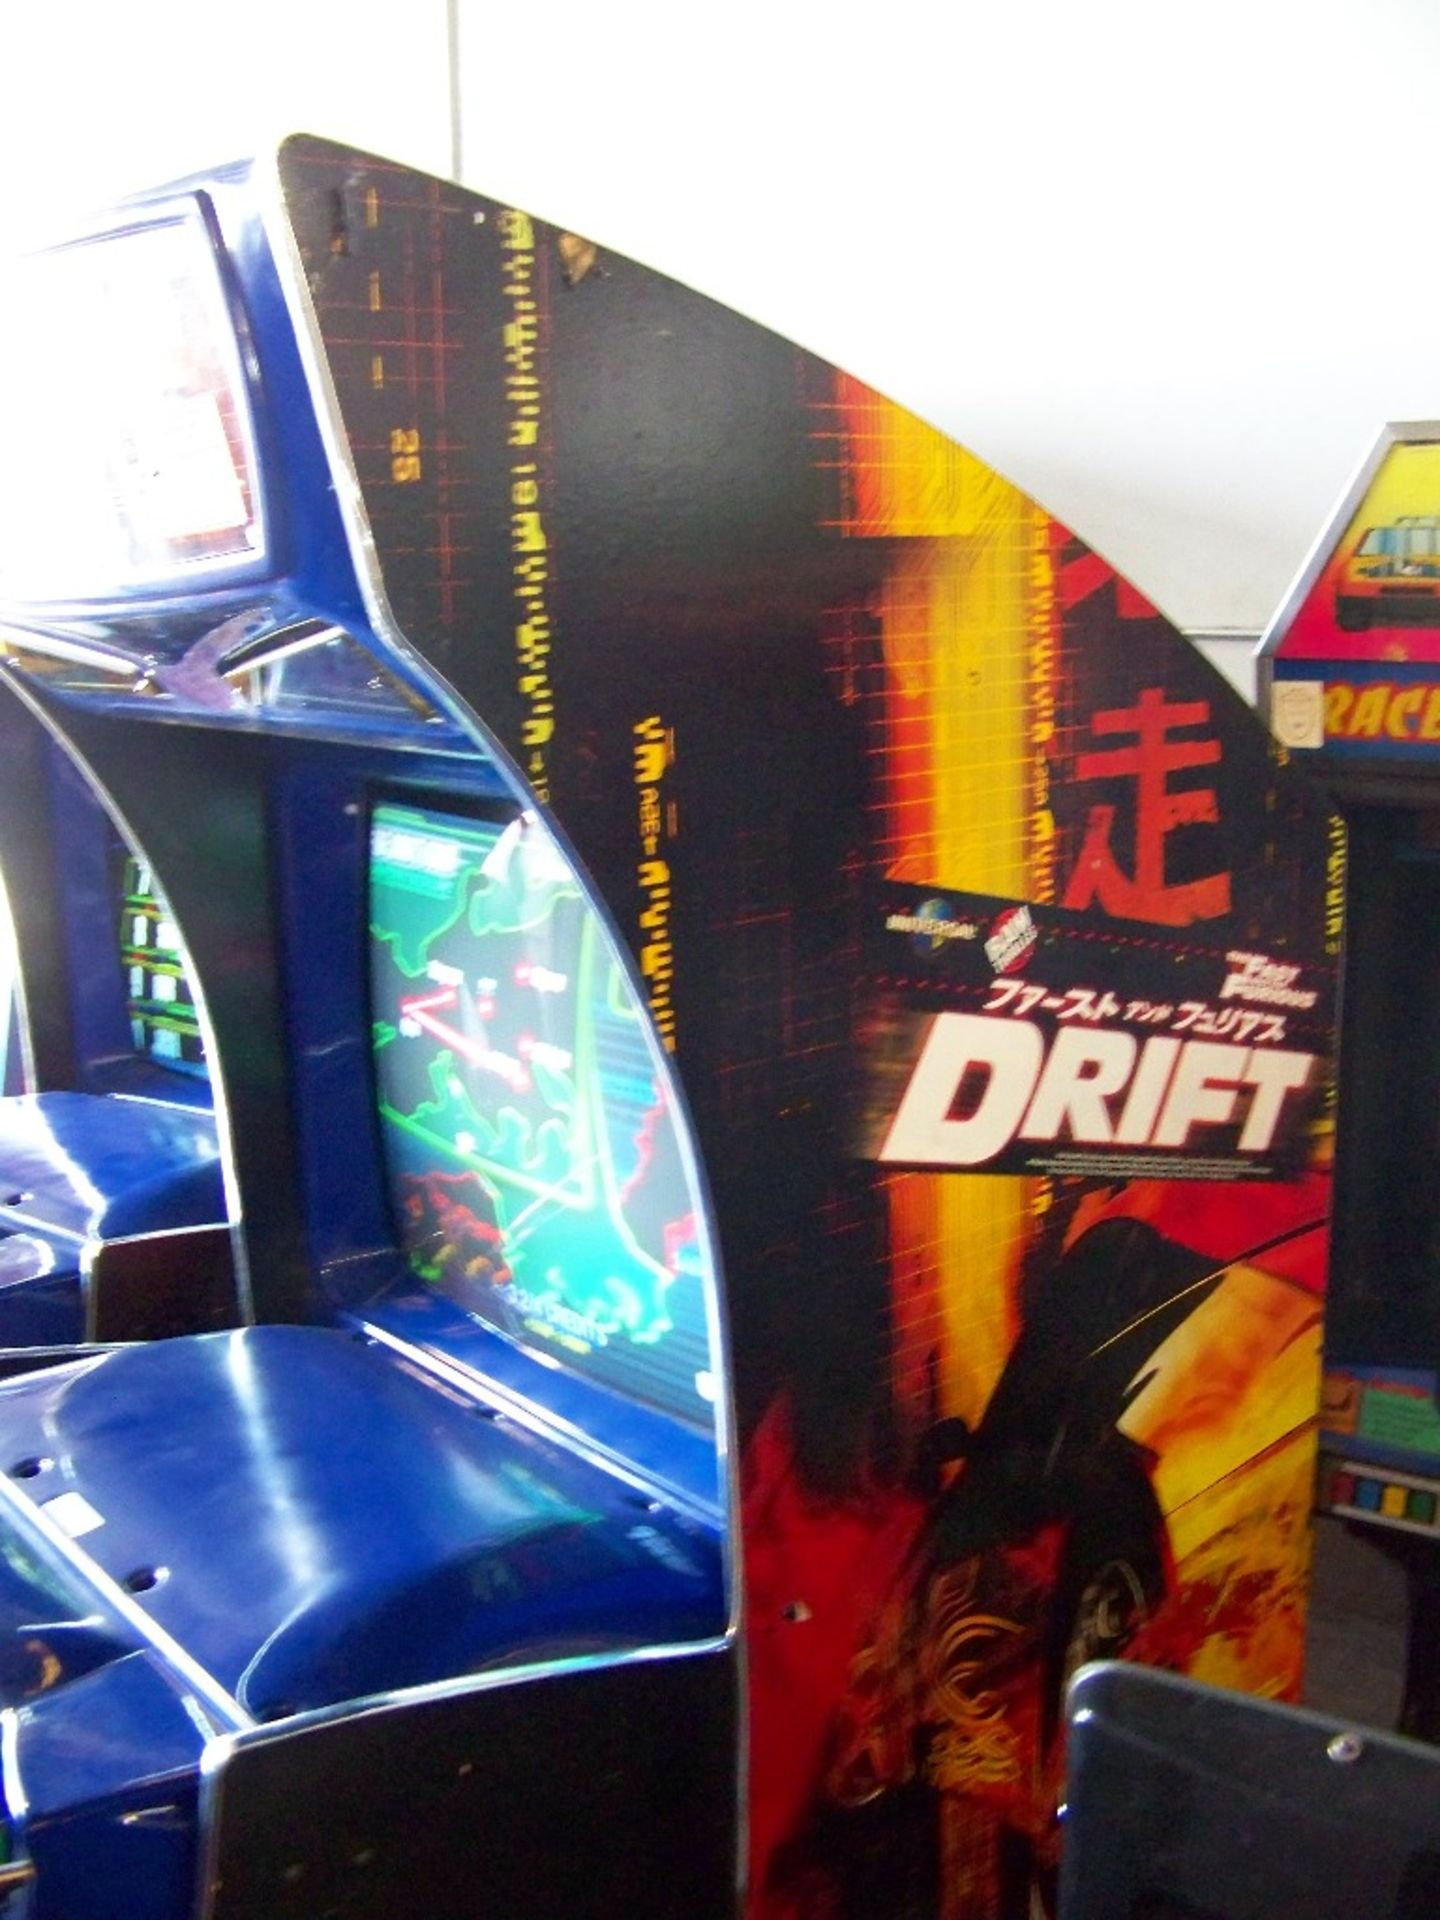 """DRIFT FAST & FURIOUS 31"""" DX RACING ARCADE GAME - Image 5 of 5"""